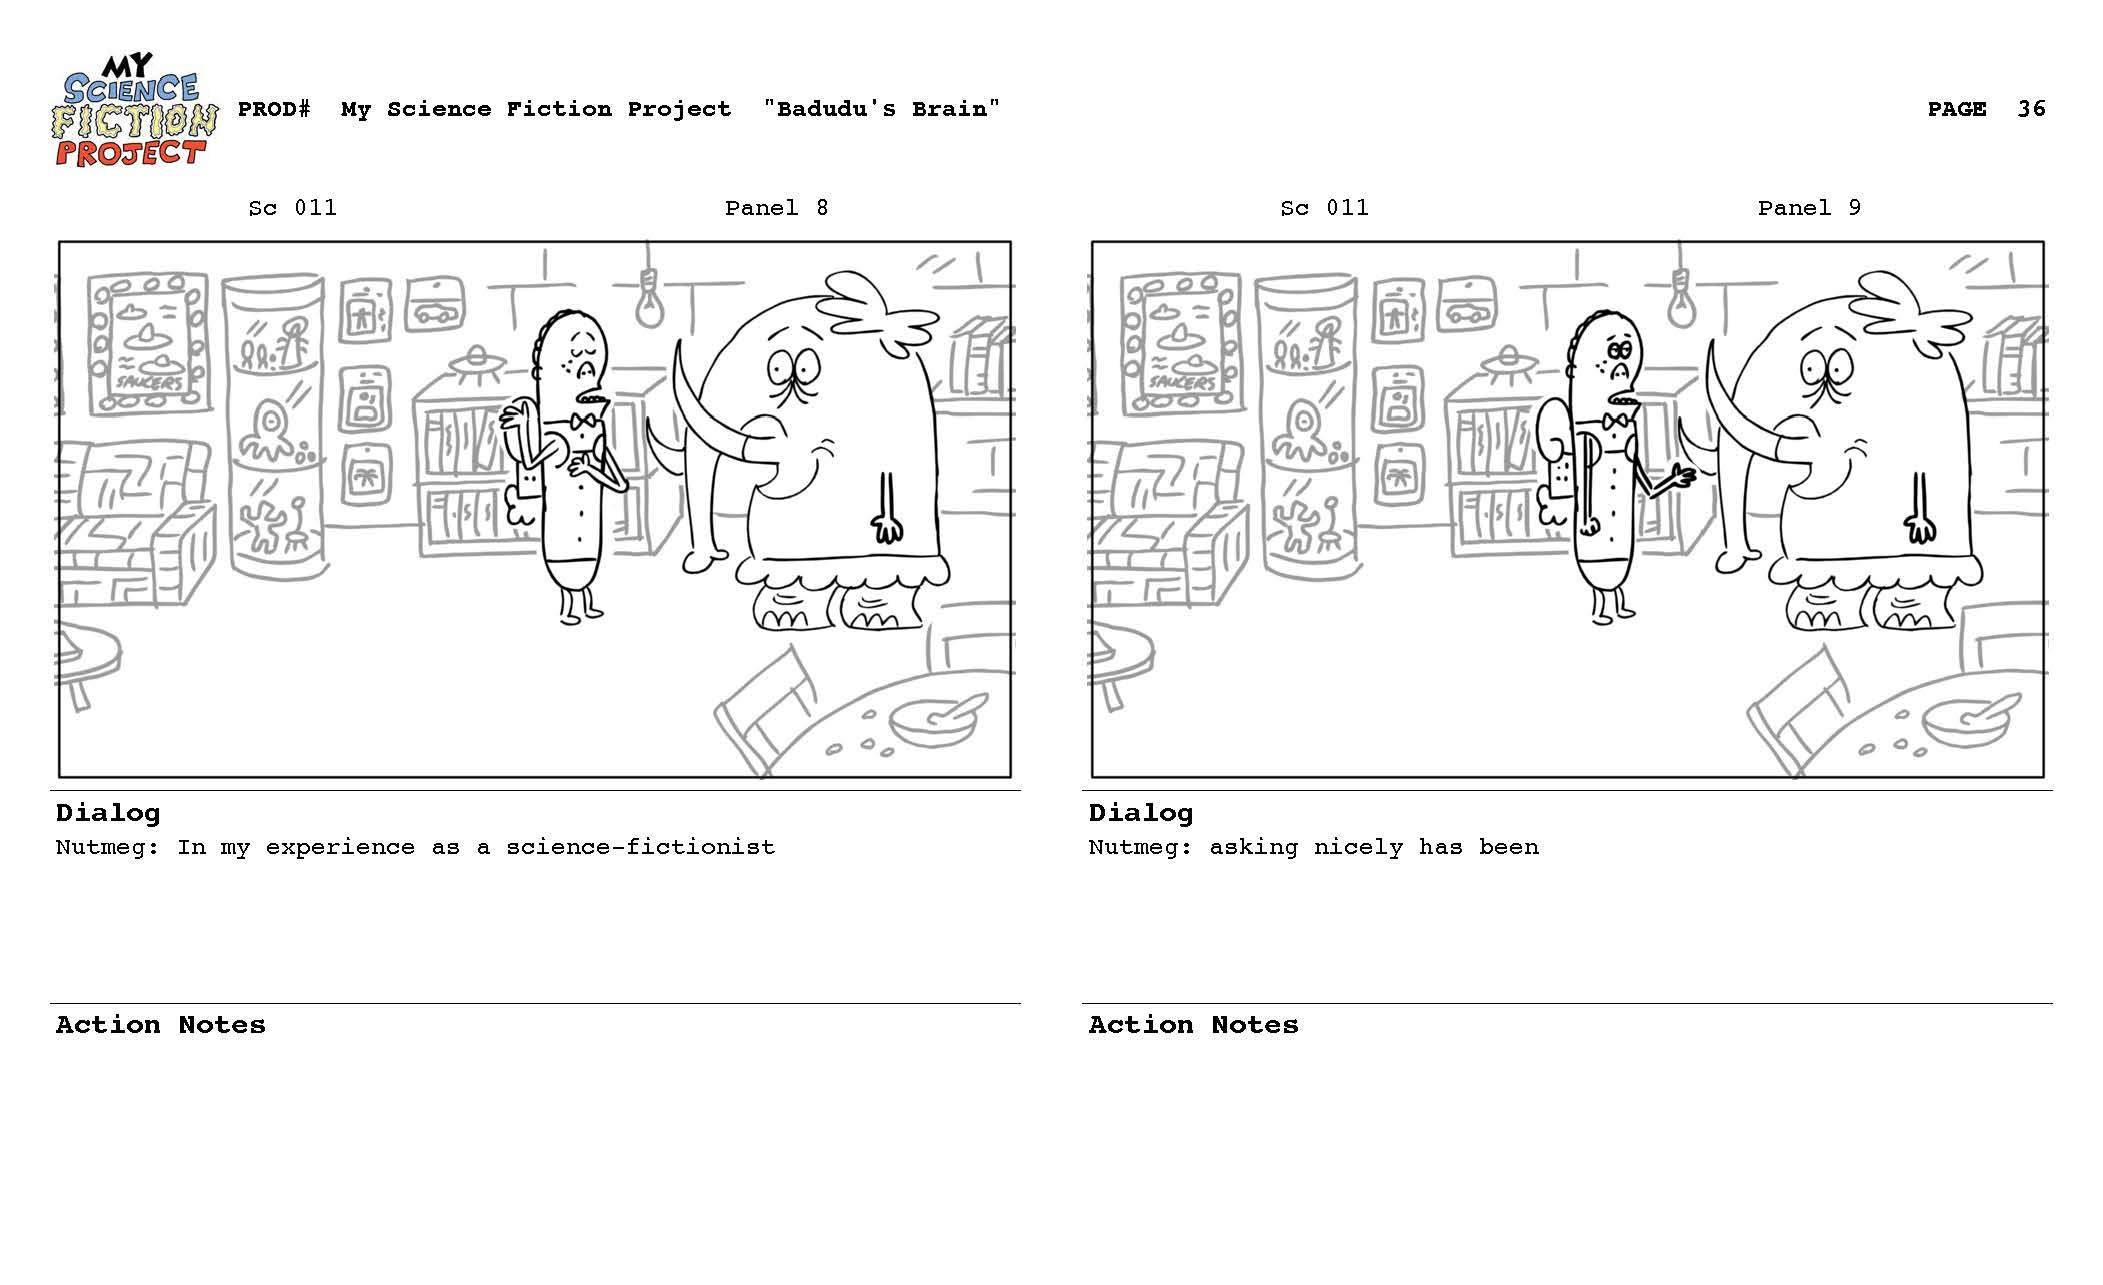 My_Science_Fiction_Project_SB_083112_reduced_Page_036.jpg